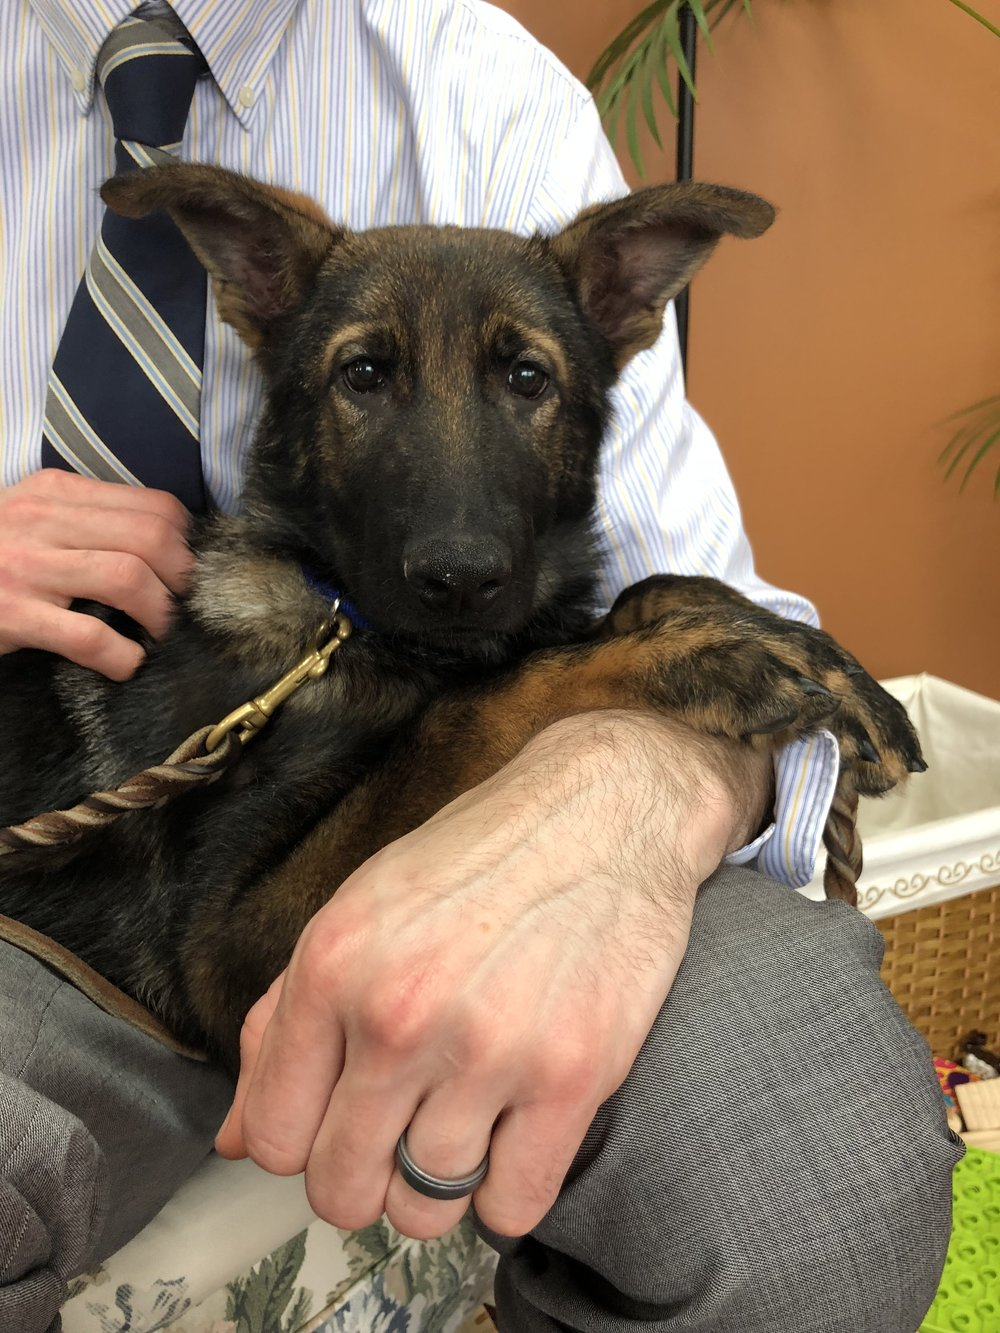 Matt Spilka's (North Haven, CT) three month old fostered German Shepard.